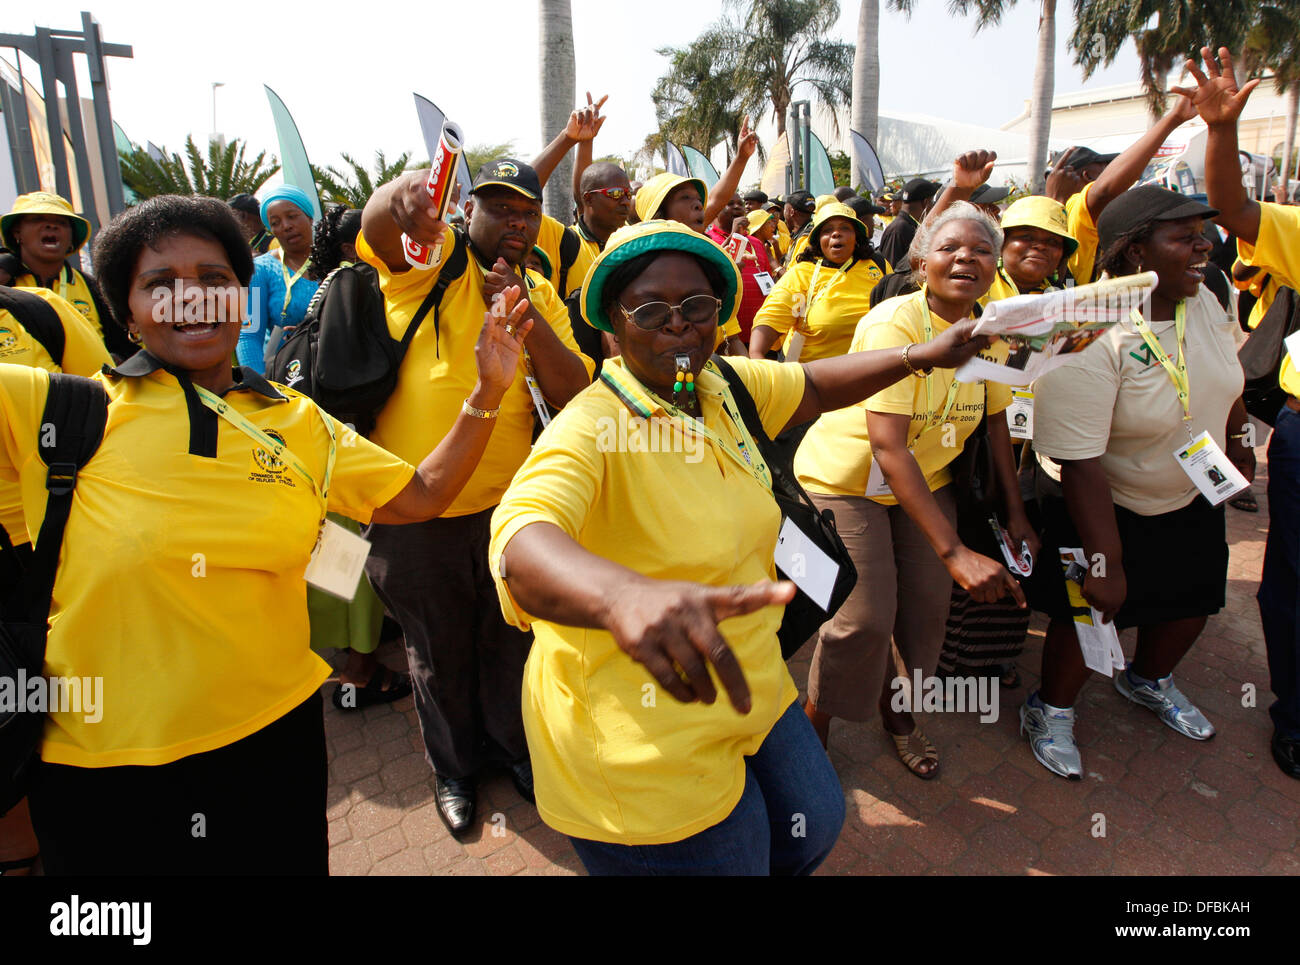 Delegates arrive at the African National Congress (ANC) National General Council in Durban, 20 September 2010. © Rogan Ward 2010 - Stock Image